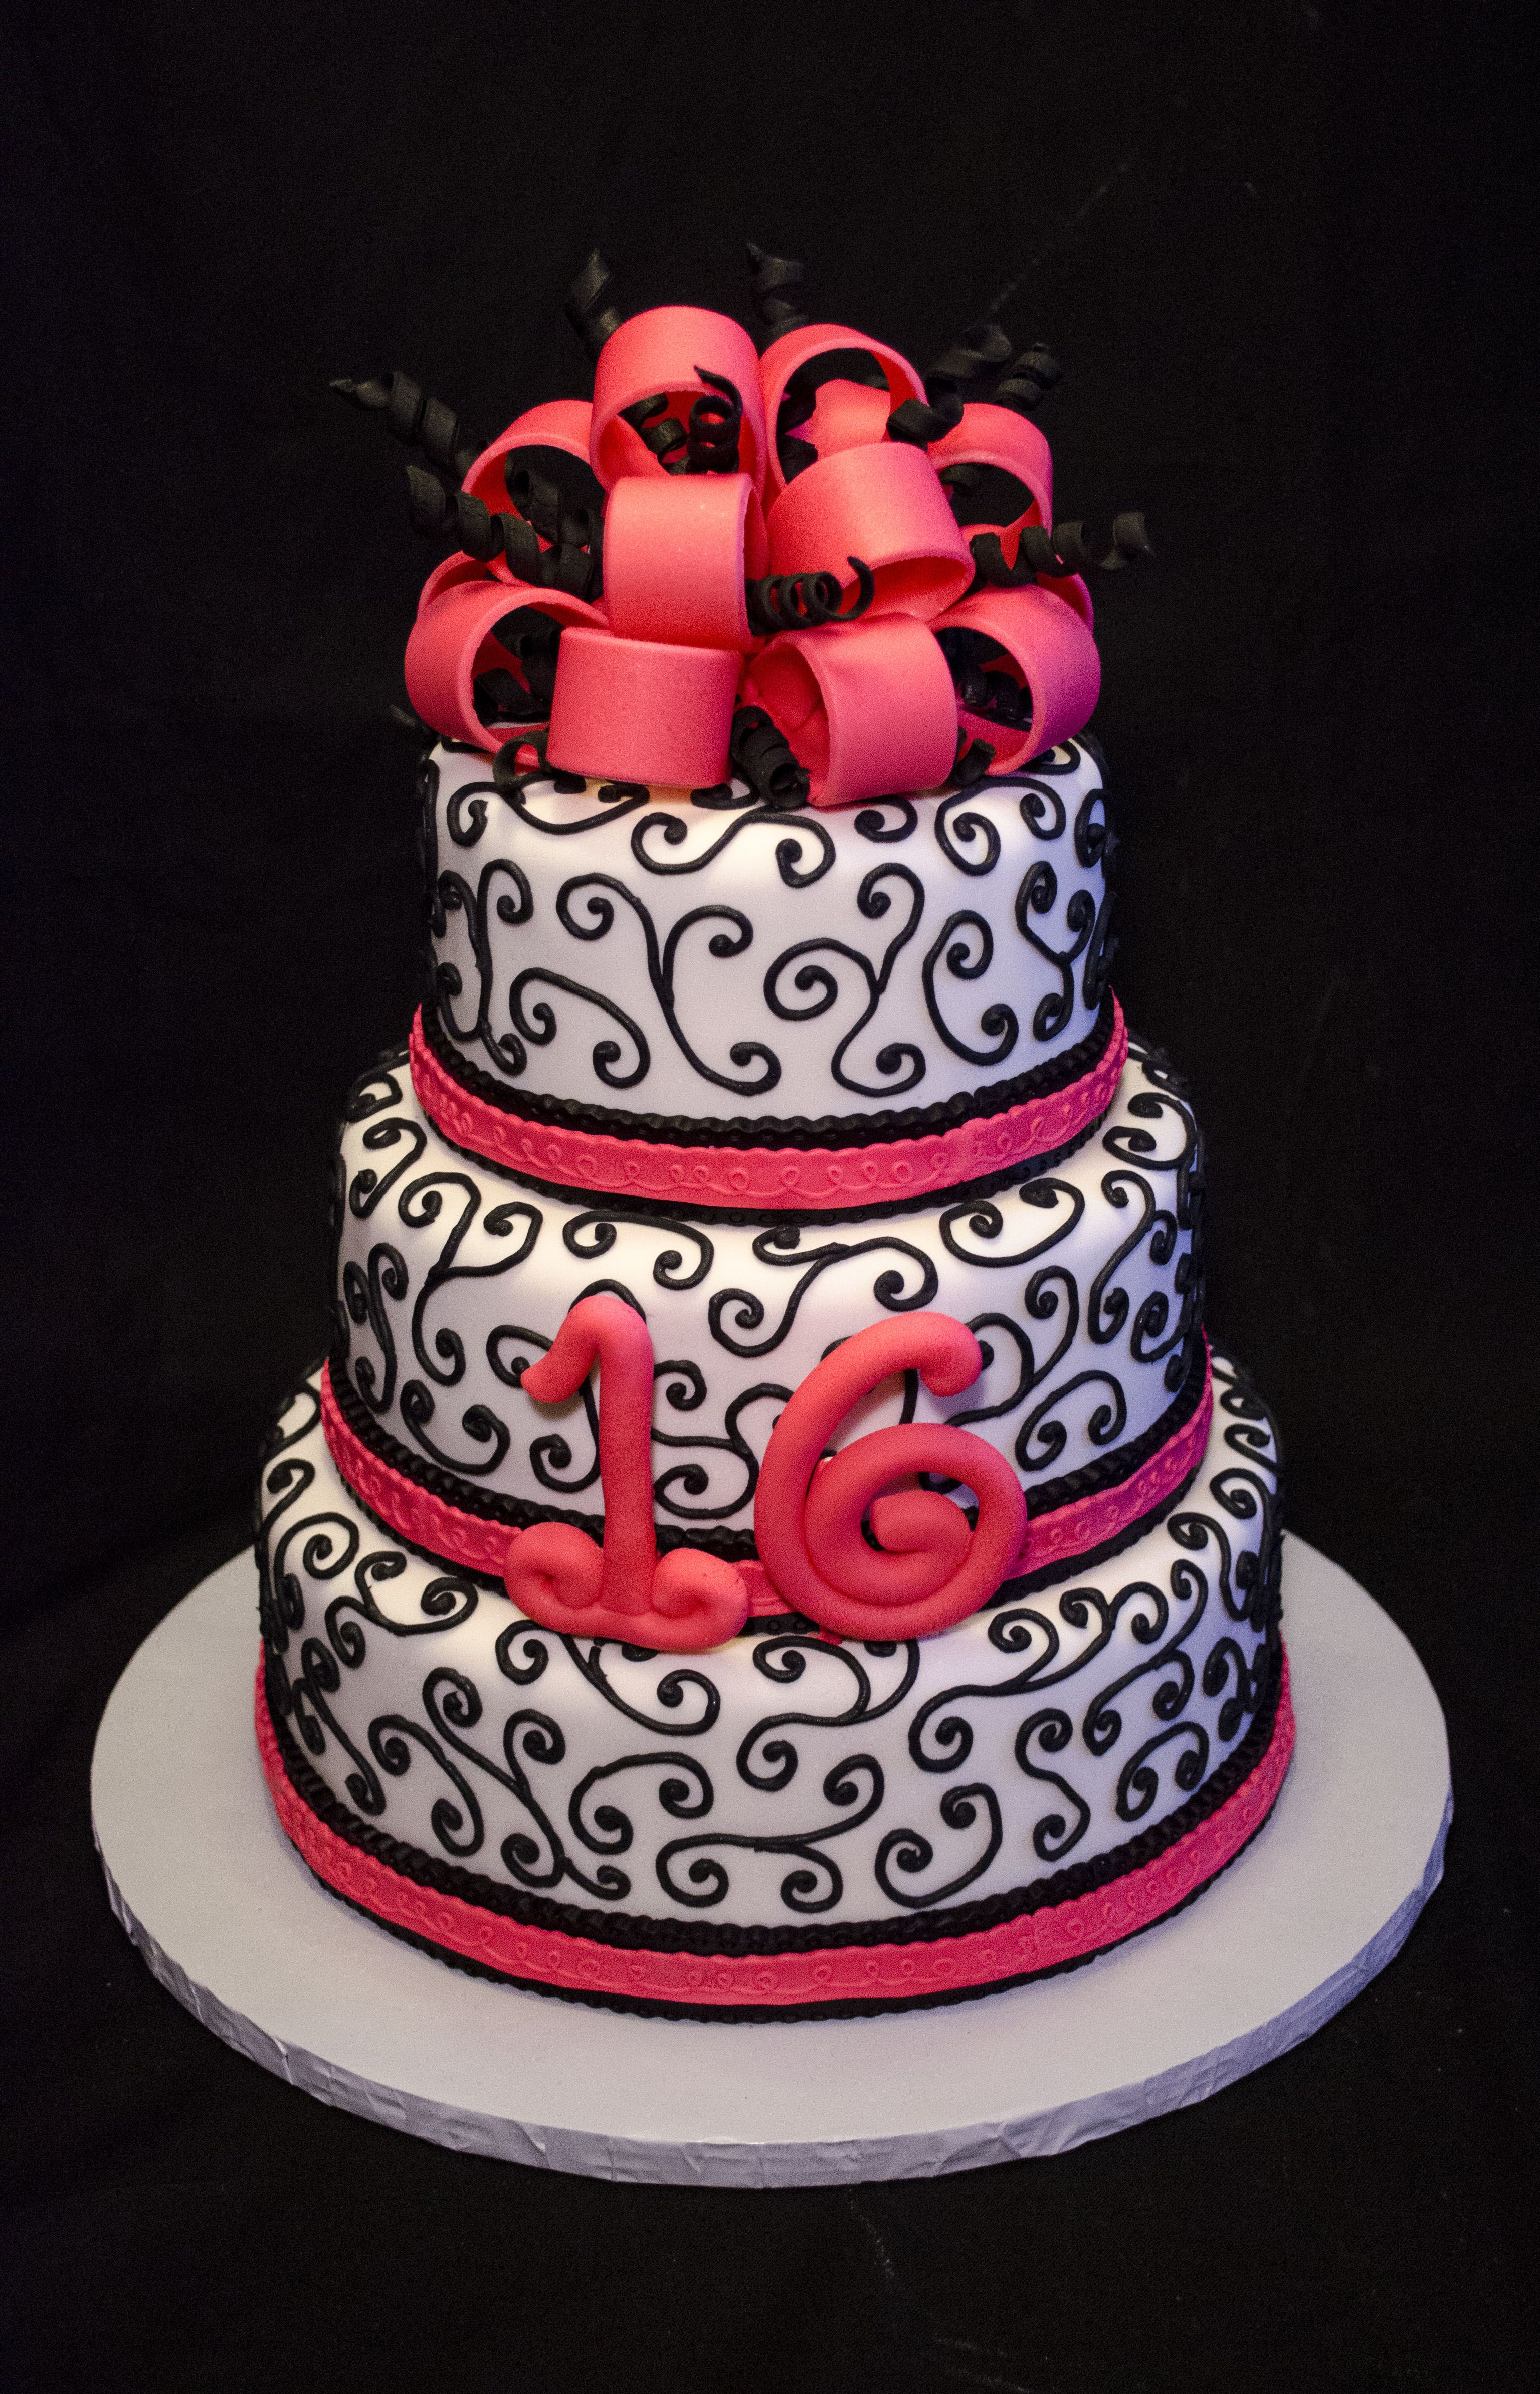 6 8 10 Inch Round Cakes Covered In Fondant And